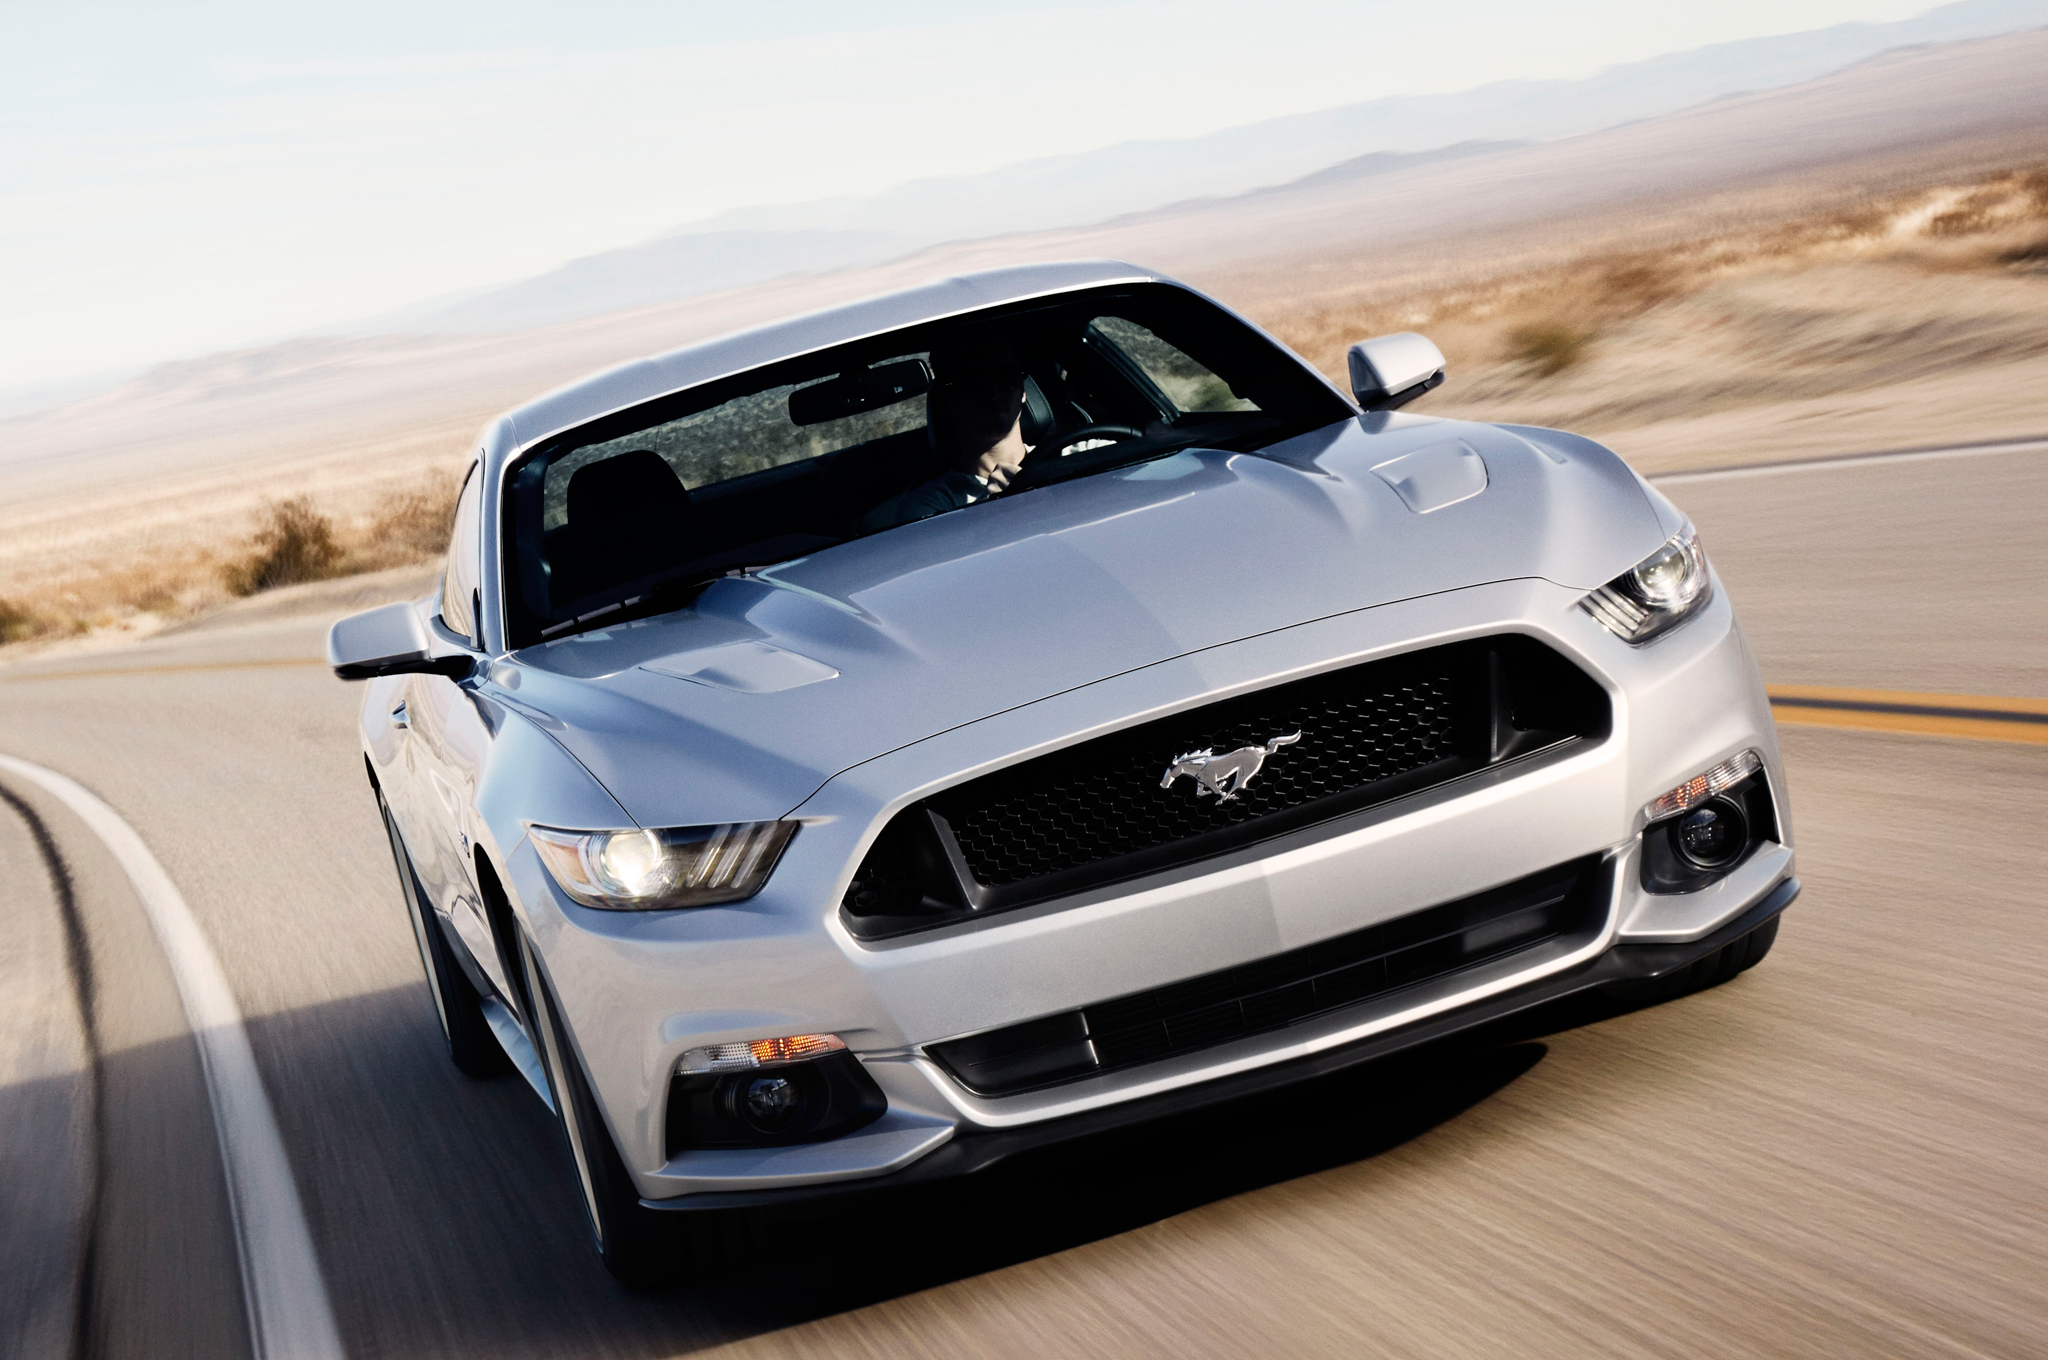 2015 Ford Mustang Gt Front End (Photo 9 of 30)